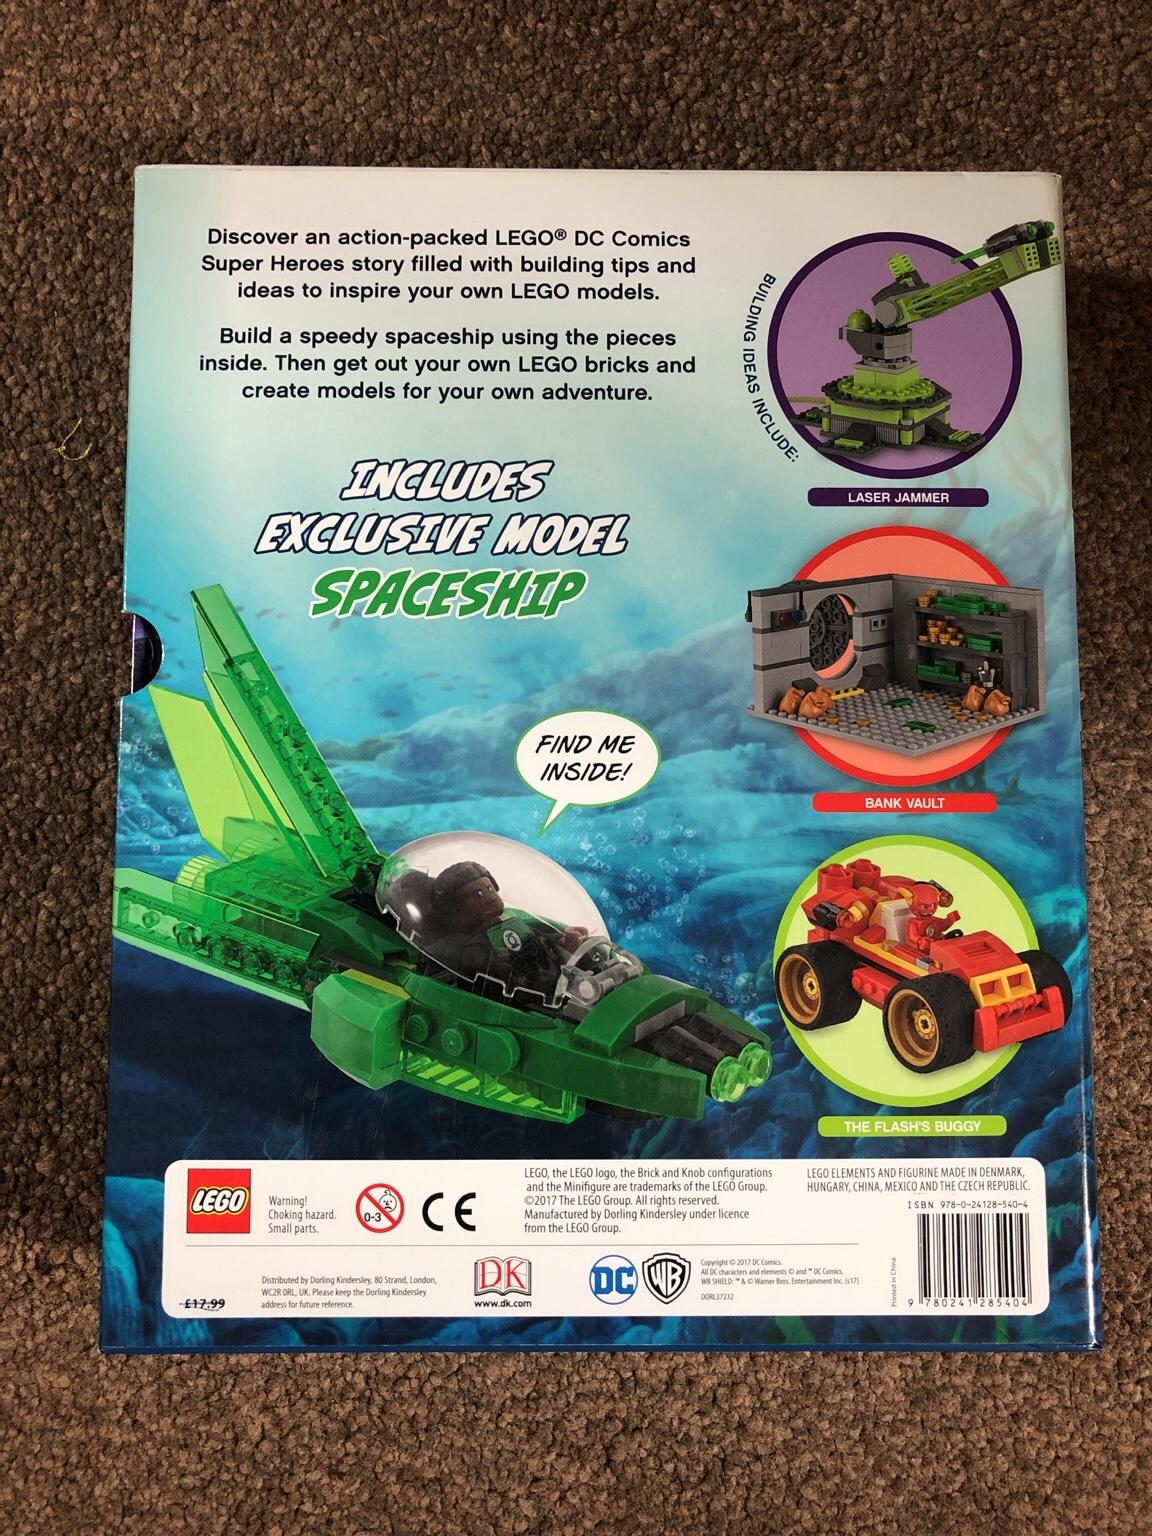 Build your own adventure Lego book/kit